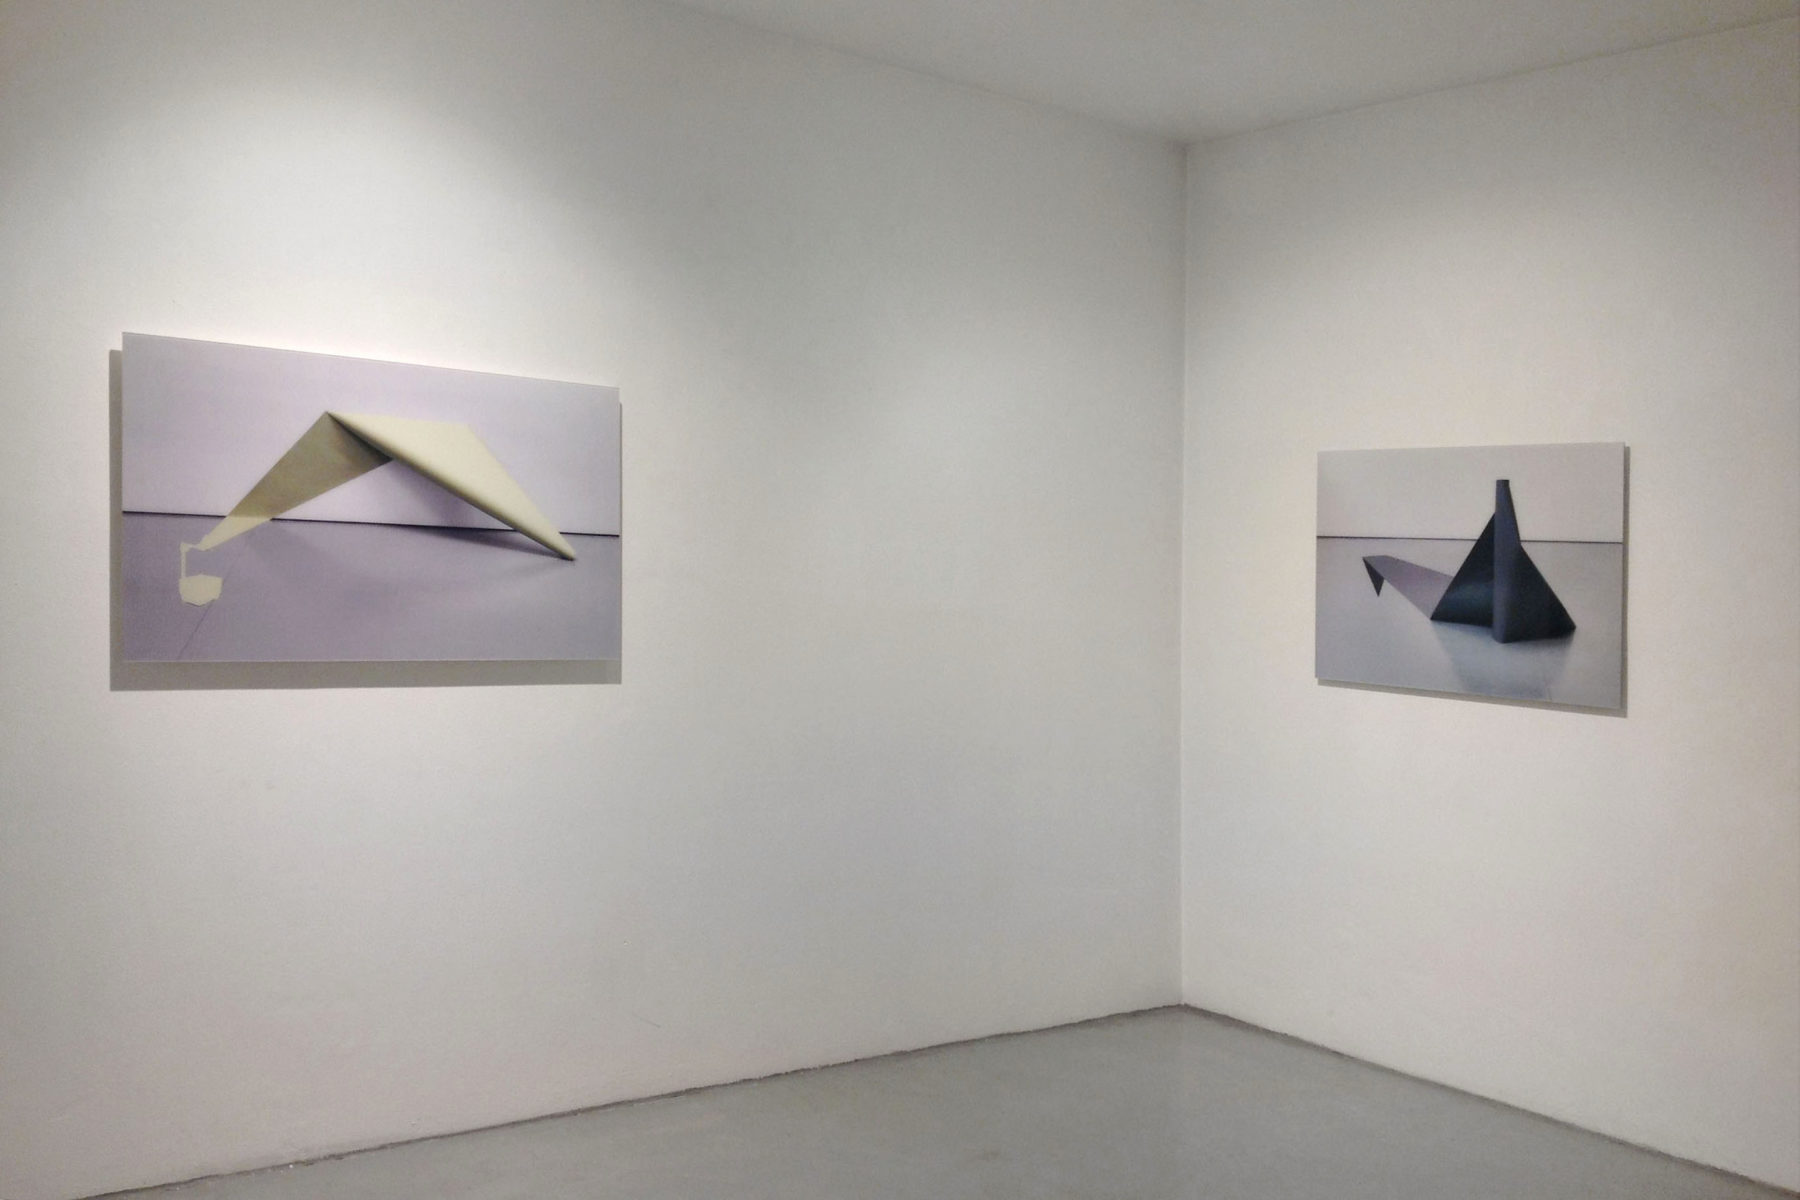 I. Eškinja, Infinity paper, 2013, show view at Deanesi Gallery, 12